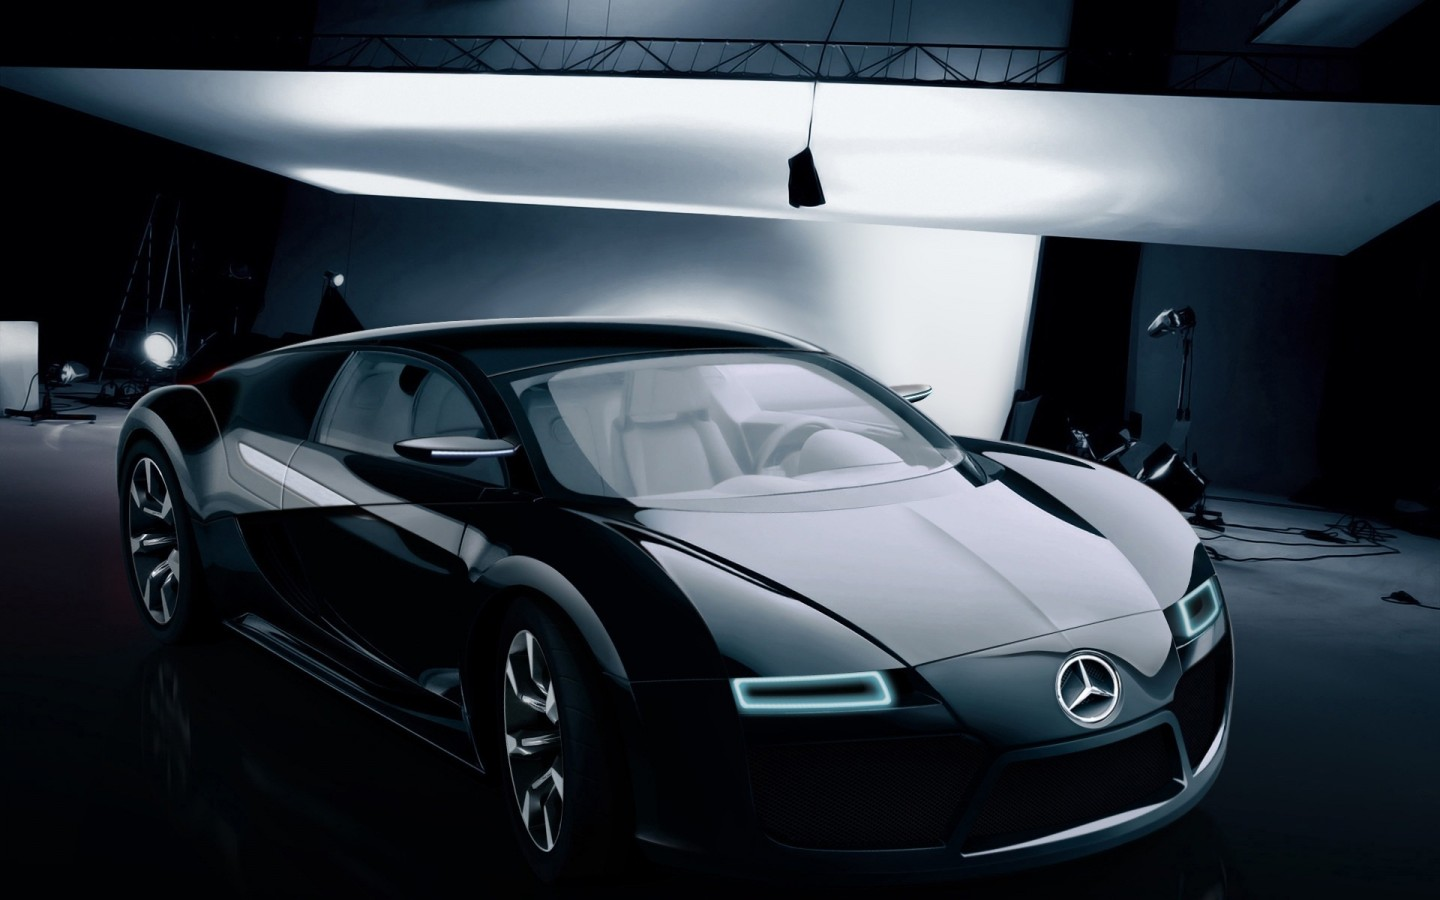 Mercedes Benz Bugatti Concept Wallpaper Hd Car